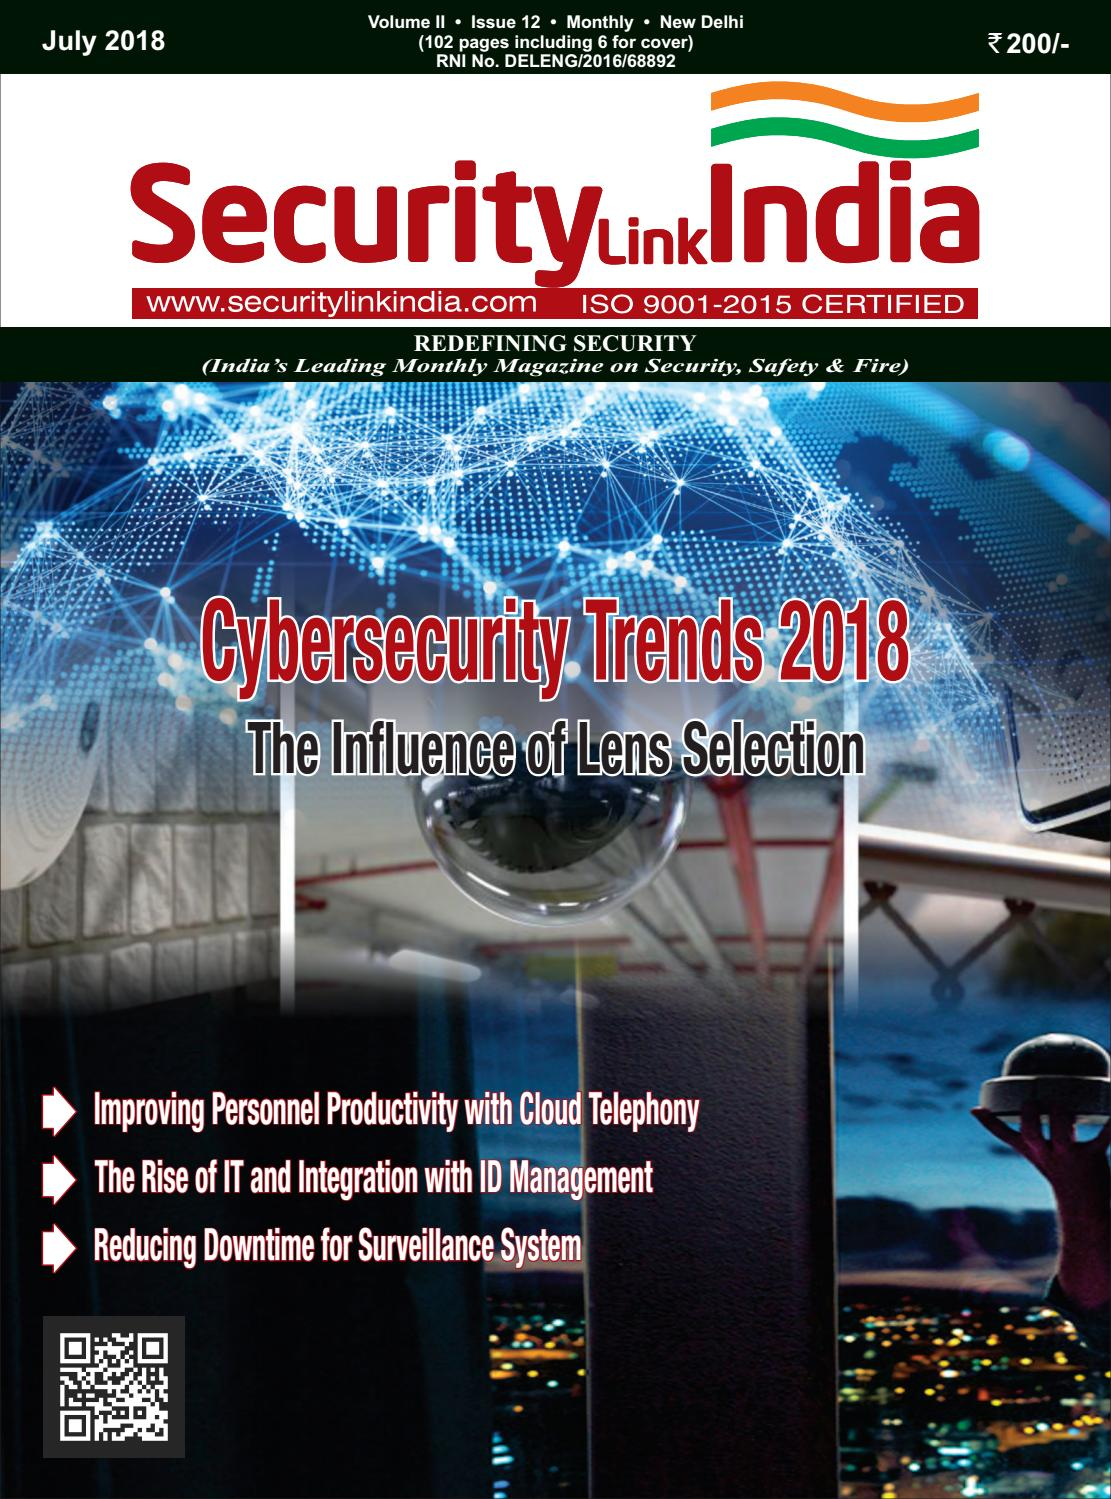 Magazine July 2018 by Security Link India - issuu